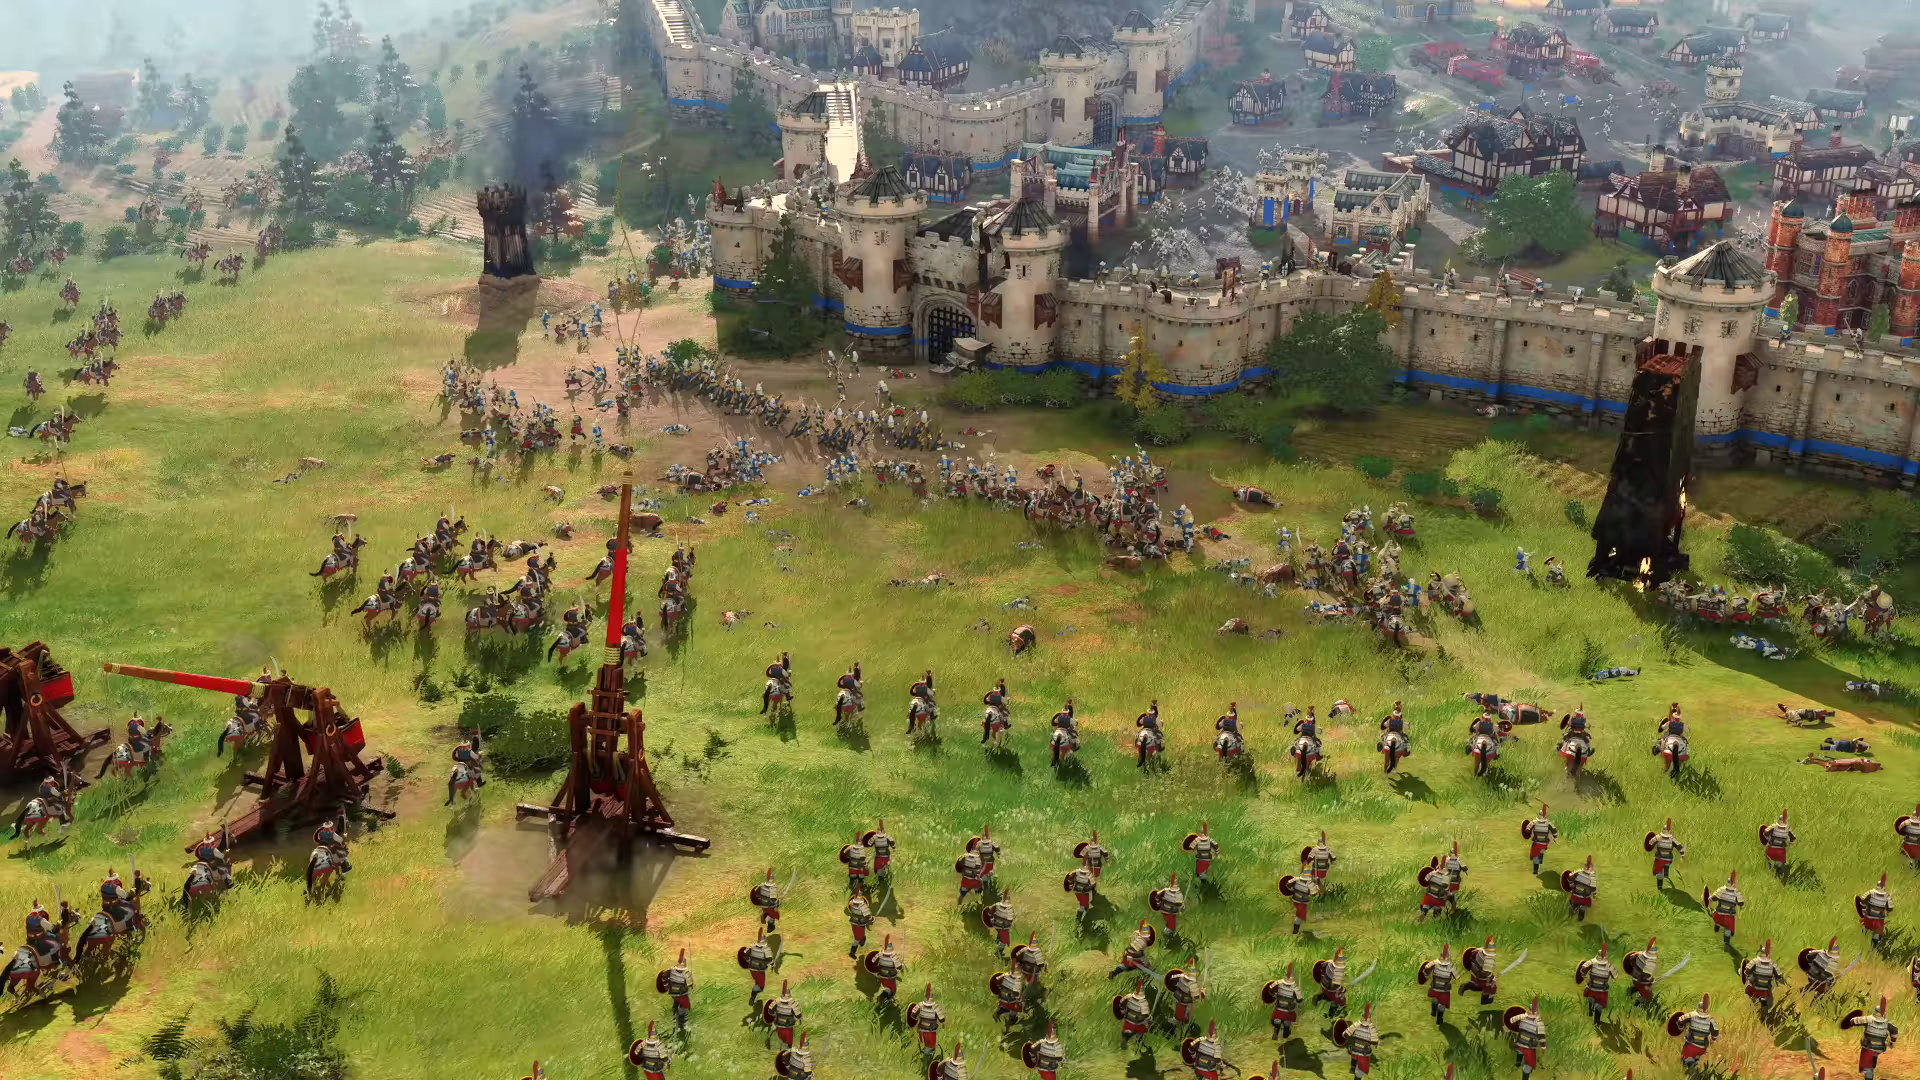 Age Of Empires 4 trailer shows off its medieval setting